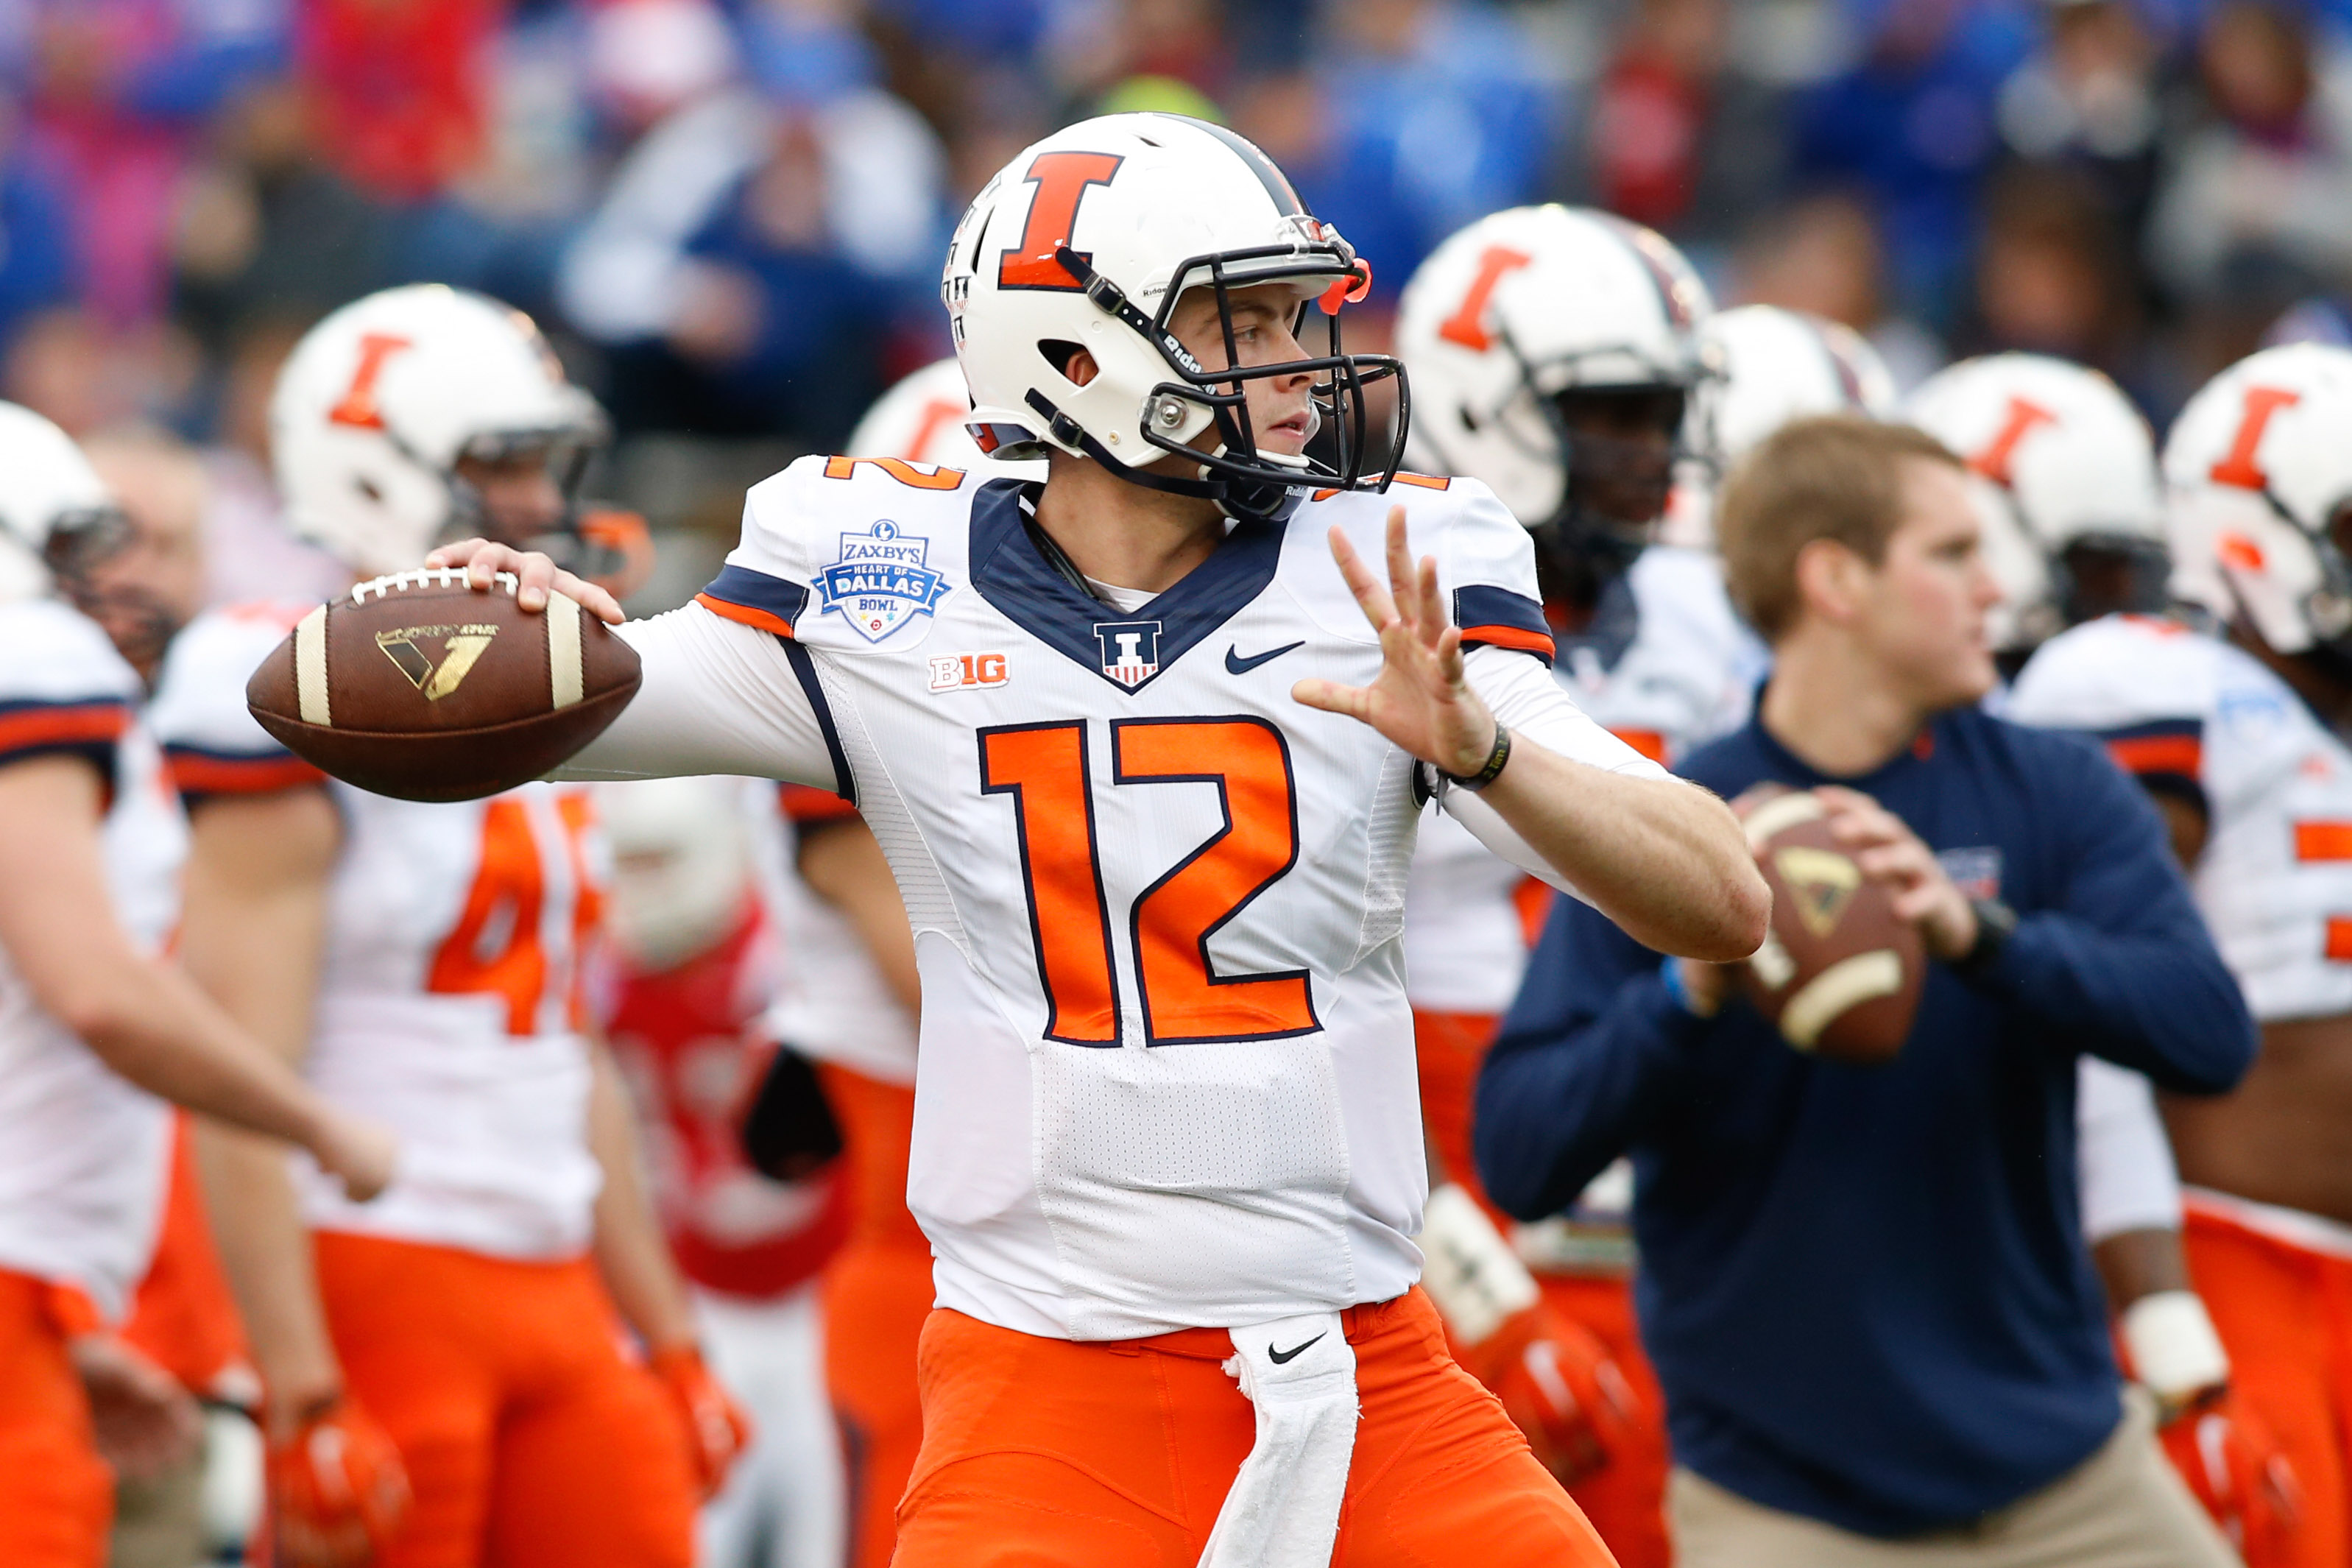 Illinois unveils its devastating two-ball trick play. Yes, several flags were thrown.